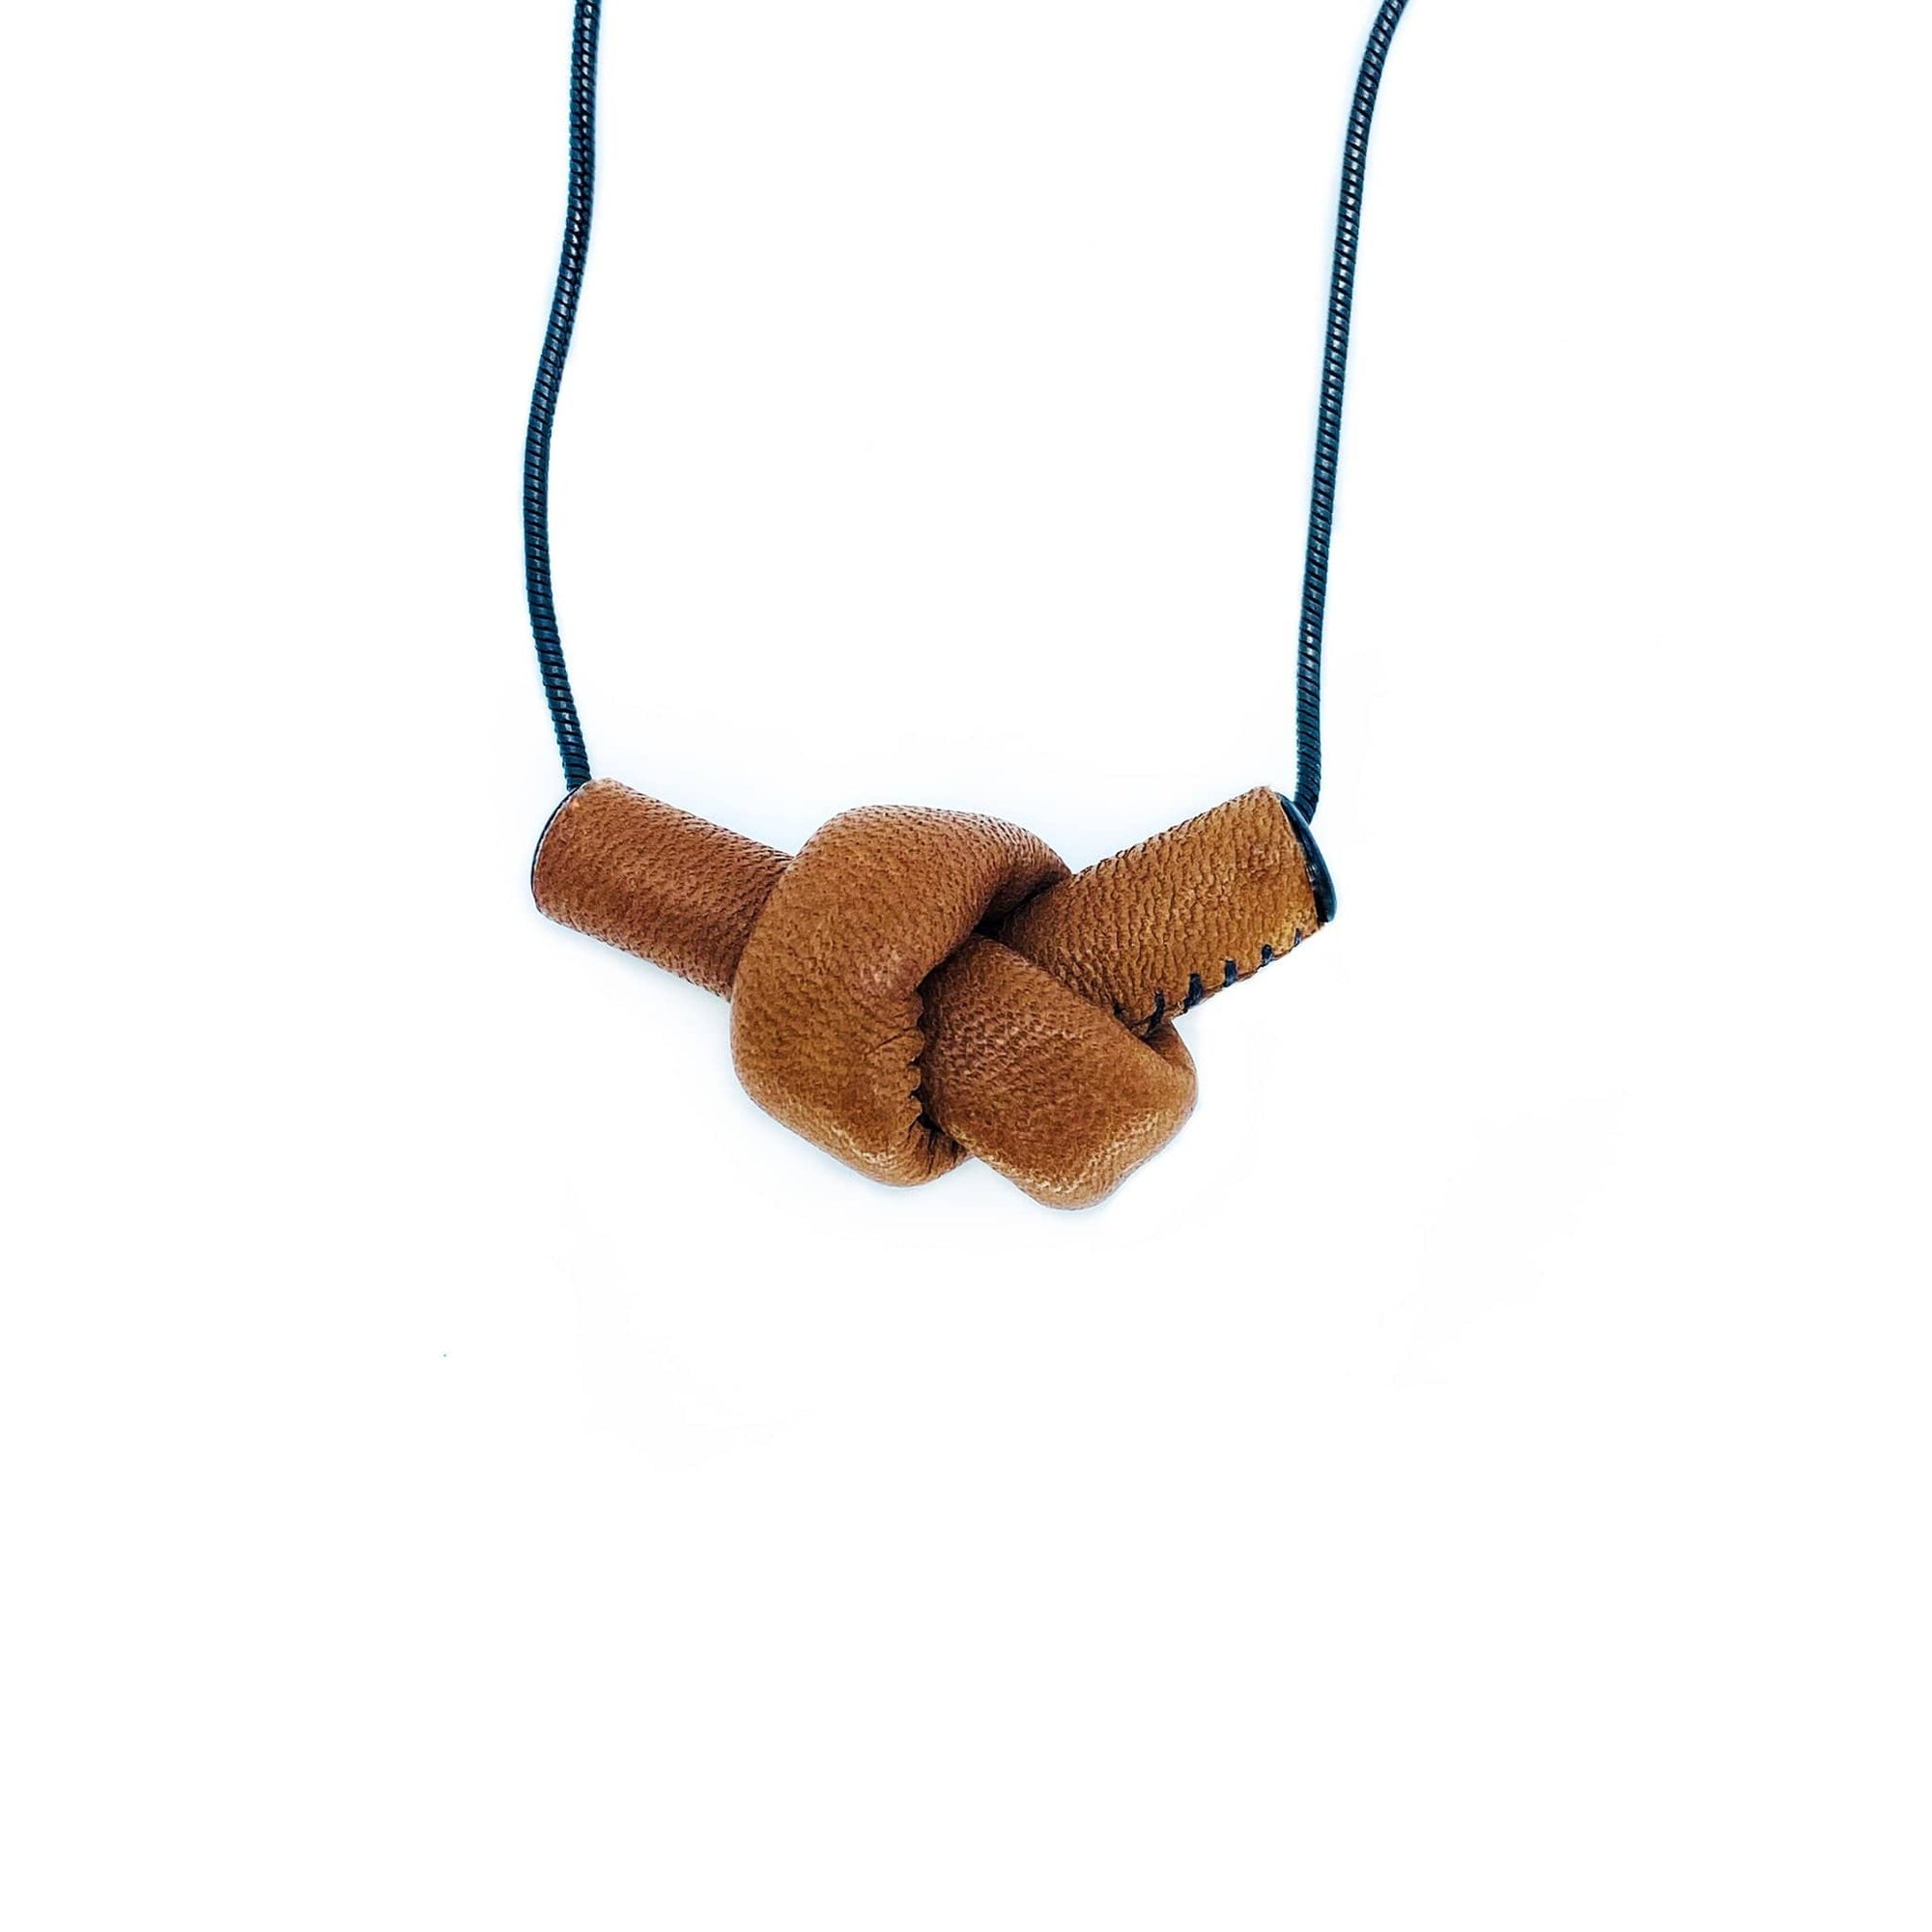 WAIWAI necklace N009 leather knot brown